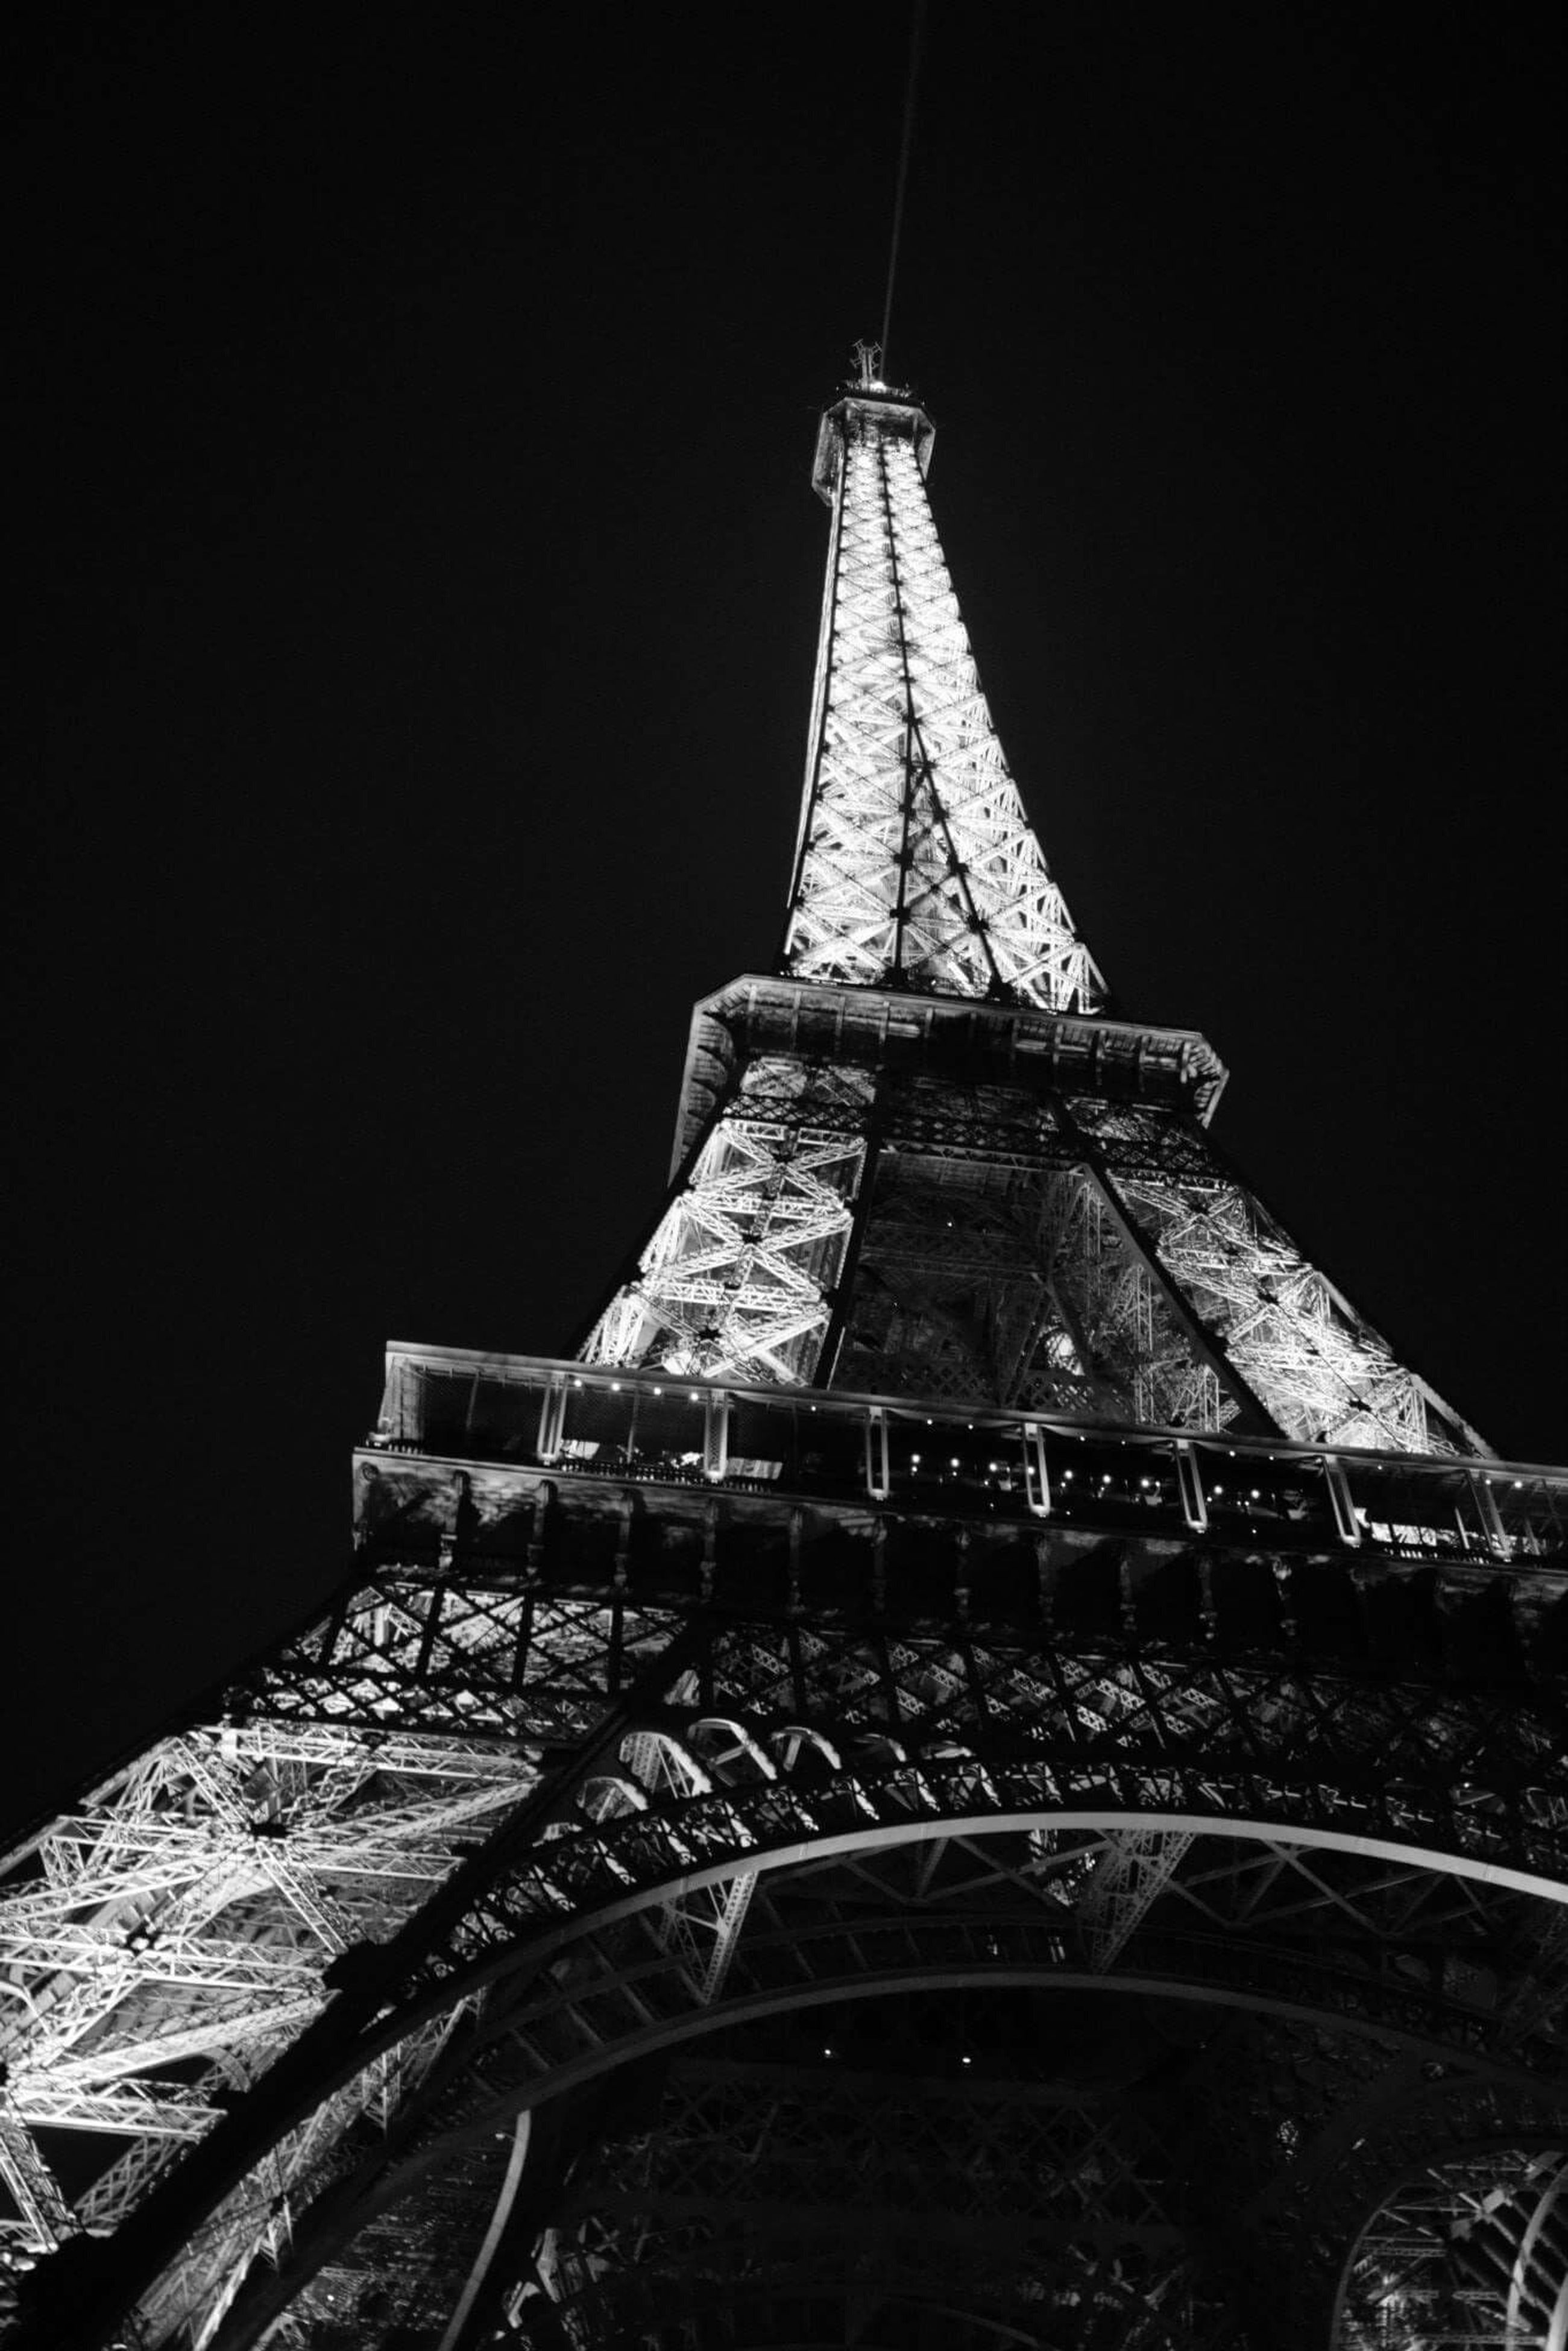 built structure, architecture, low angle view, clear sky, famous place, eiffel tower, travel destinations, building exterior, international landmark, travel, tower, metal, tourism, culture, copy space, night, history, capital cities, sky, outdoors